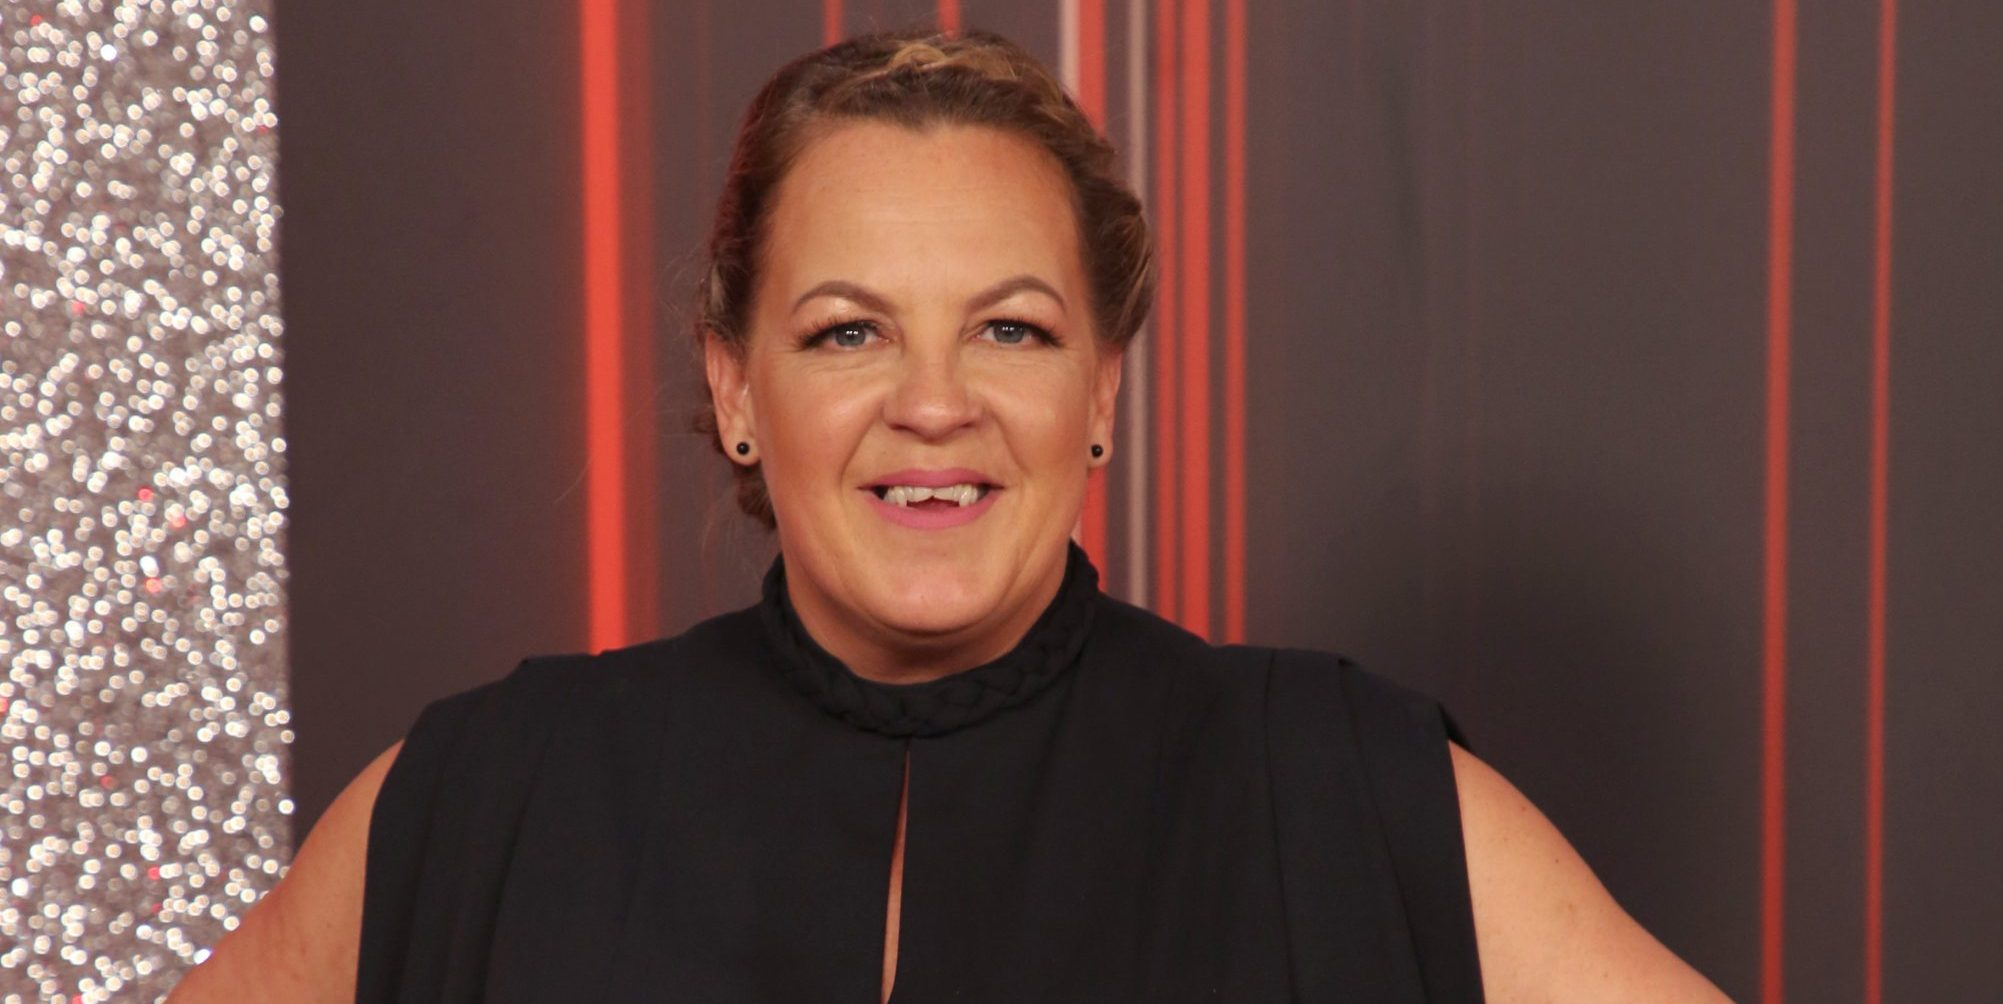 EastEnders' Lorraine Stanley reveals she still sucks her thumb in holiday pictures